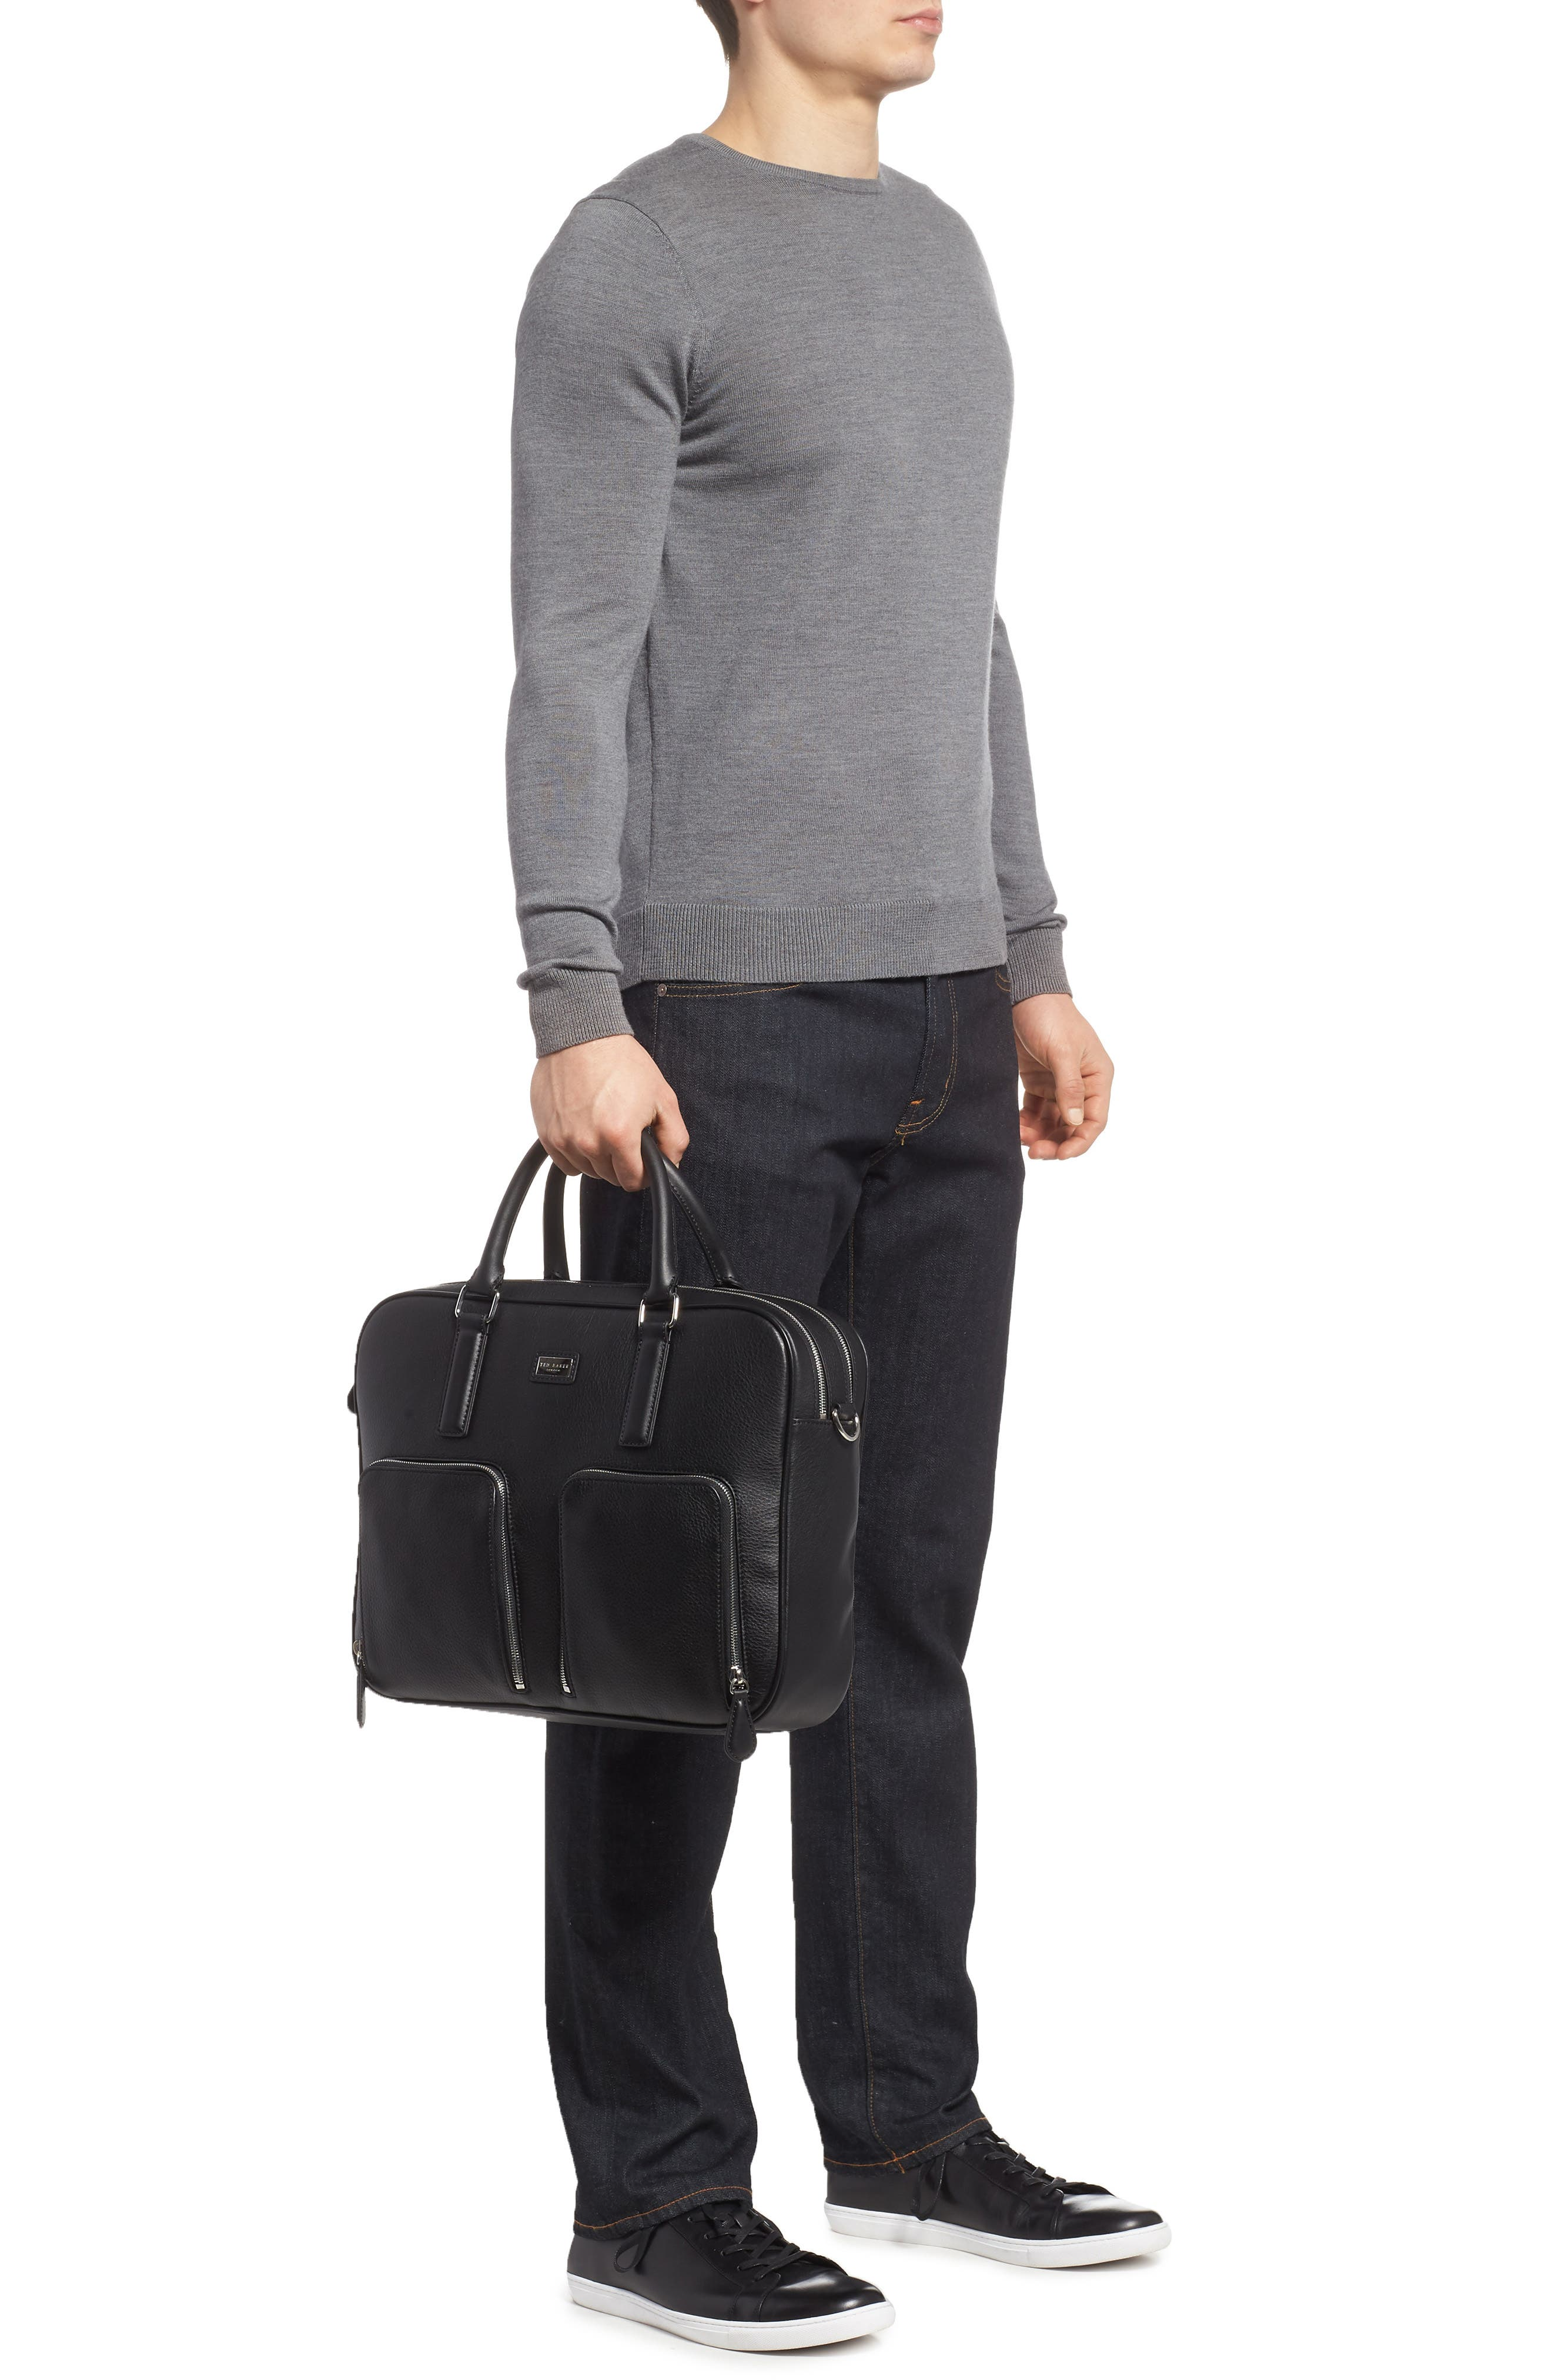 Toother Leather Briefcase,                             Alternate thumbnail 2, color,                             Black